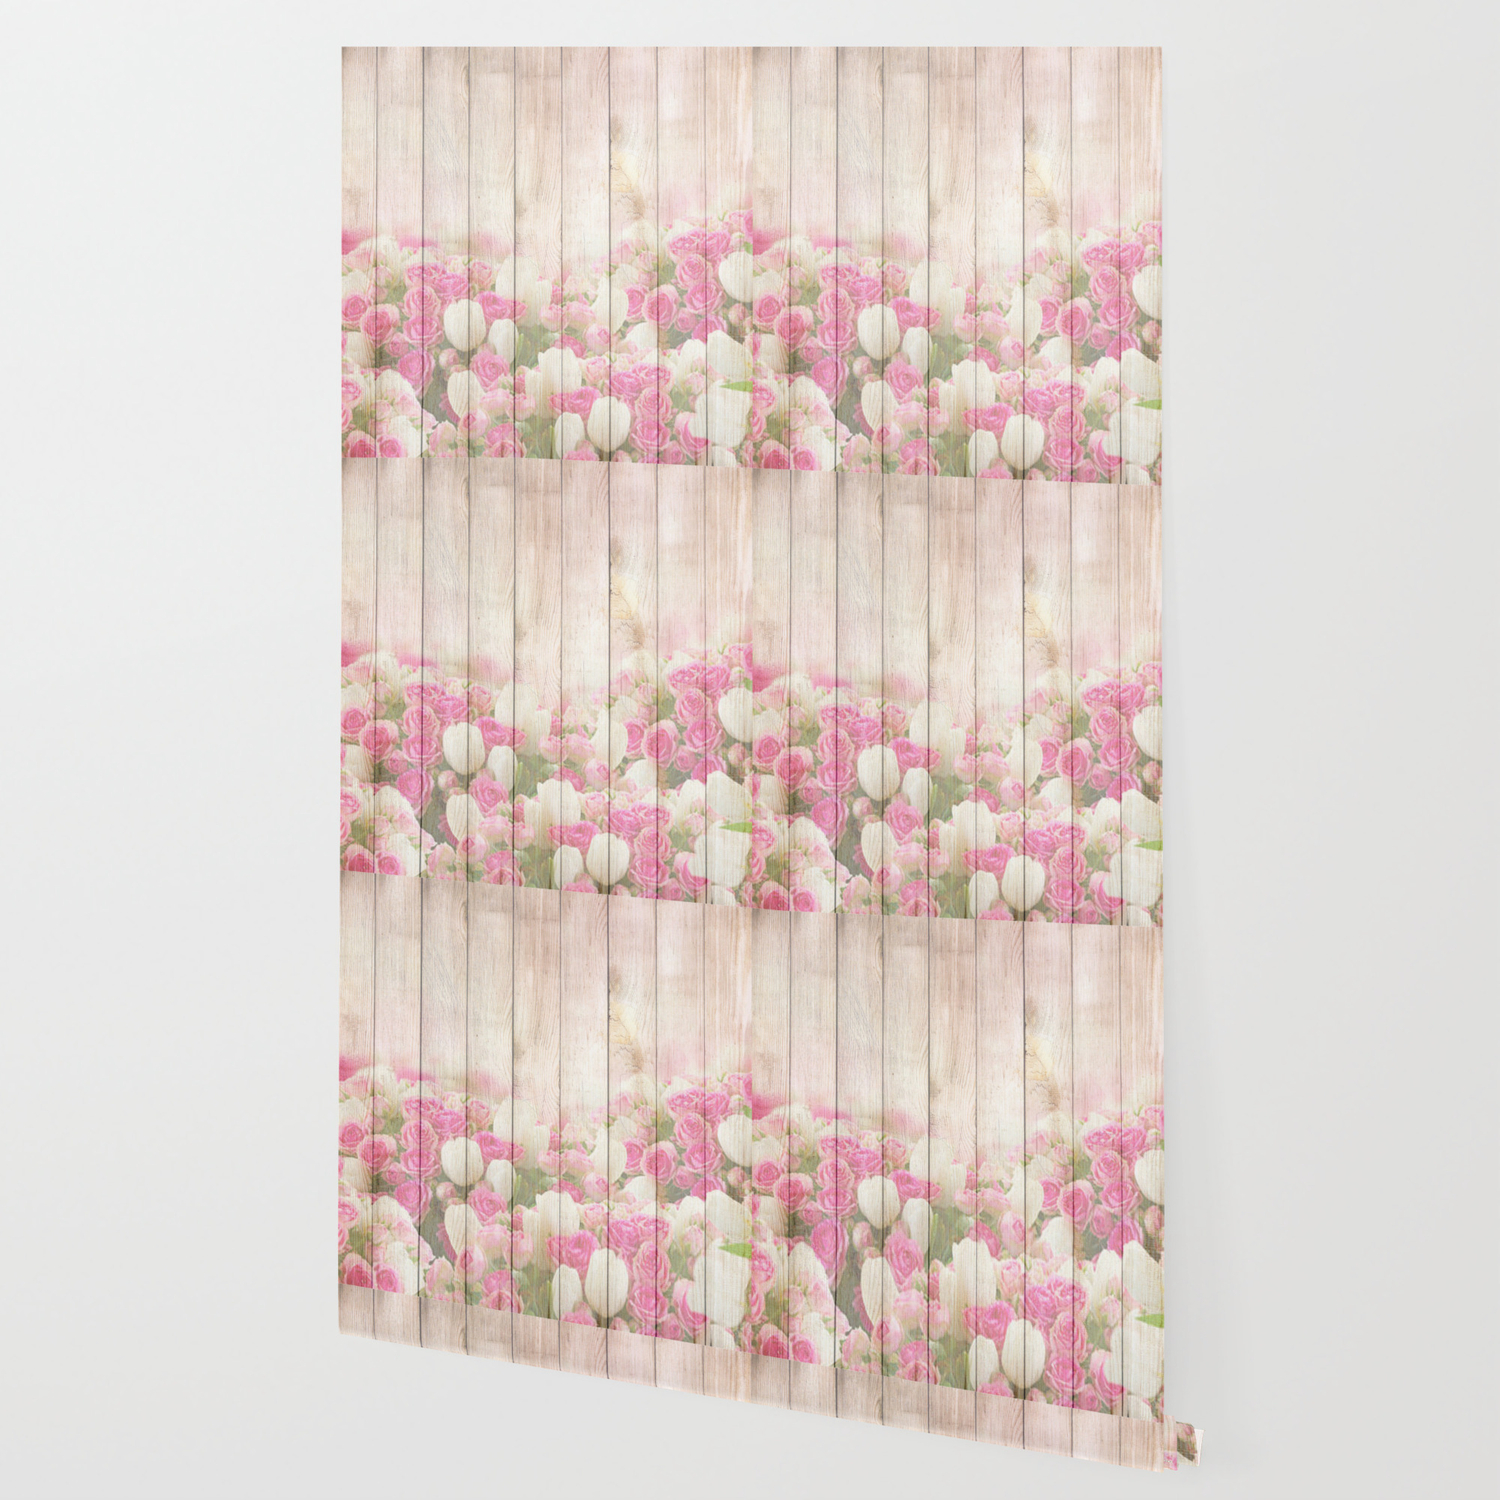 Beautiful Pink Tulip Floral Vintage Shabby Chic Wallpaper By